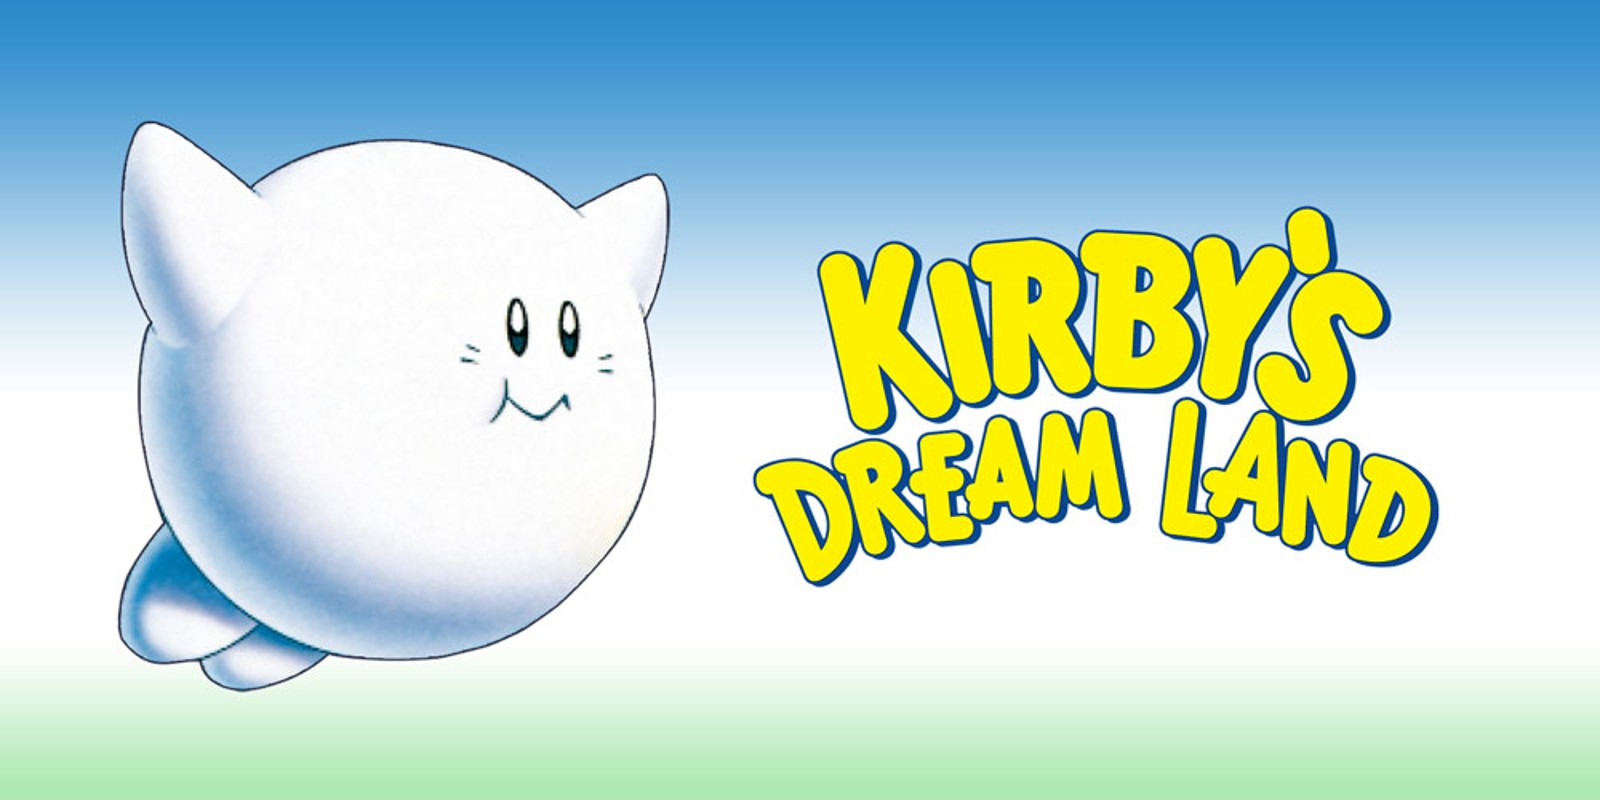 kirby s dream land game boy games nintendo nintendo ds lite guide nintendo ds price guide